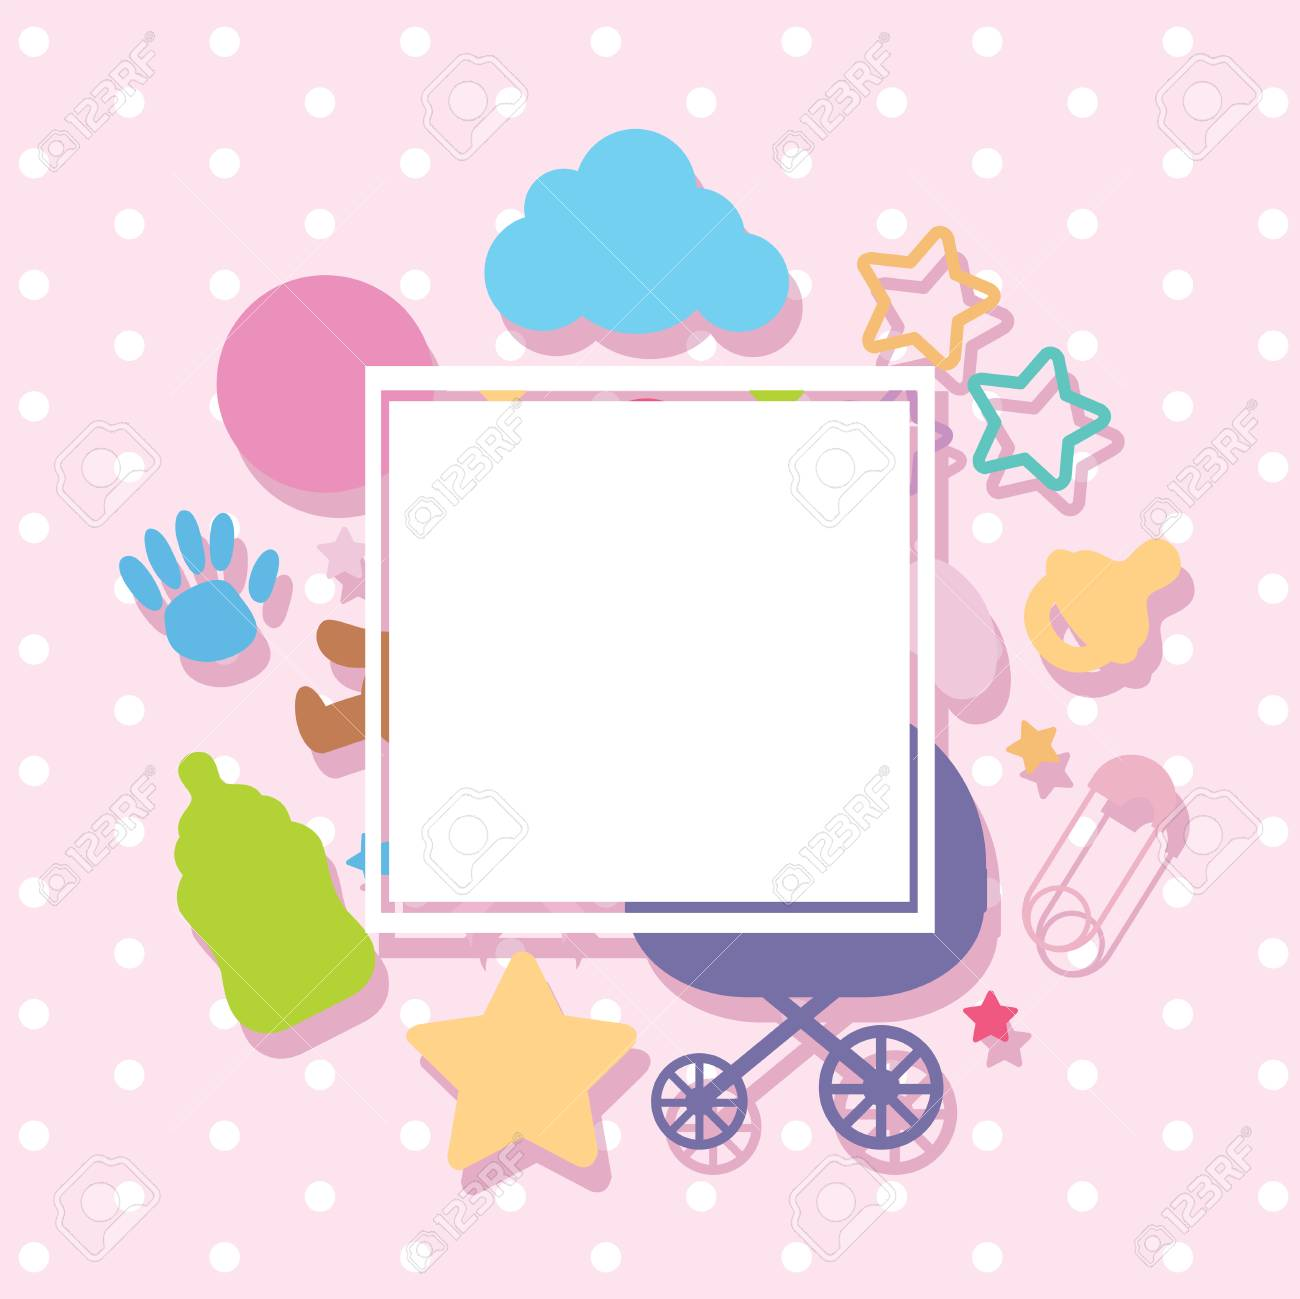 Border template with baby items illustration.